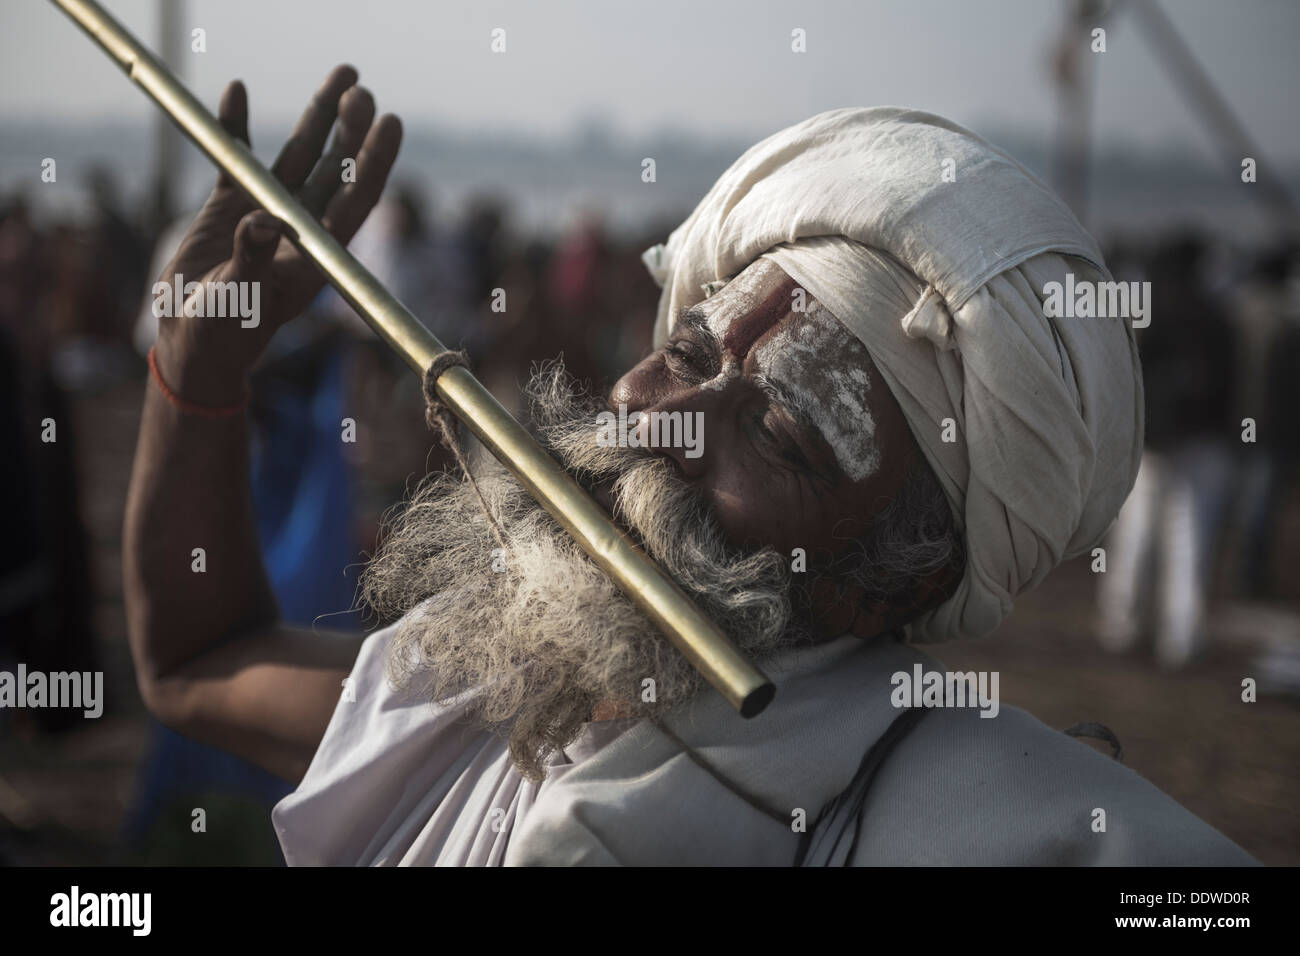 Naga Sadhu - The Great Renounce blowing flute and in his trance meditating at Kumbh Mela 2013, India - Stock Image